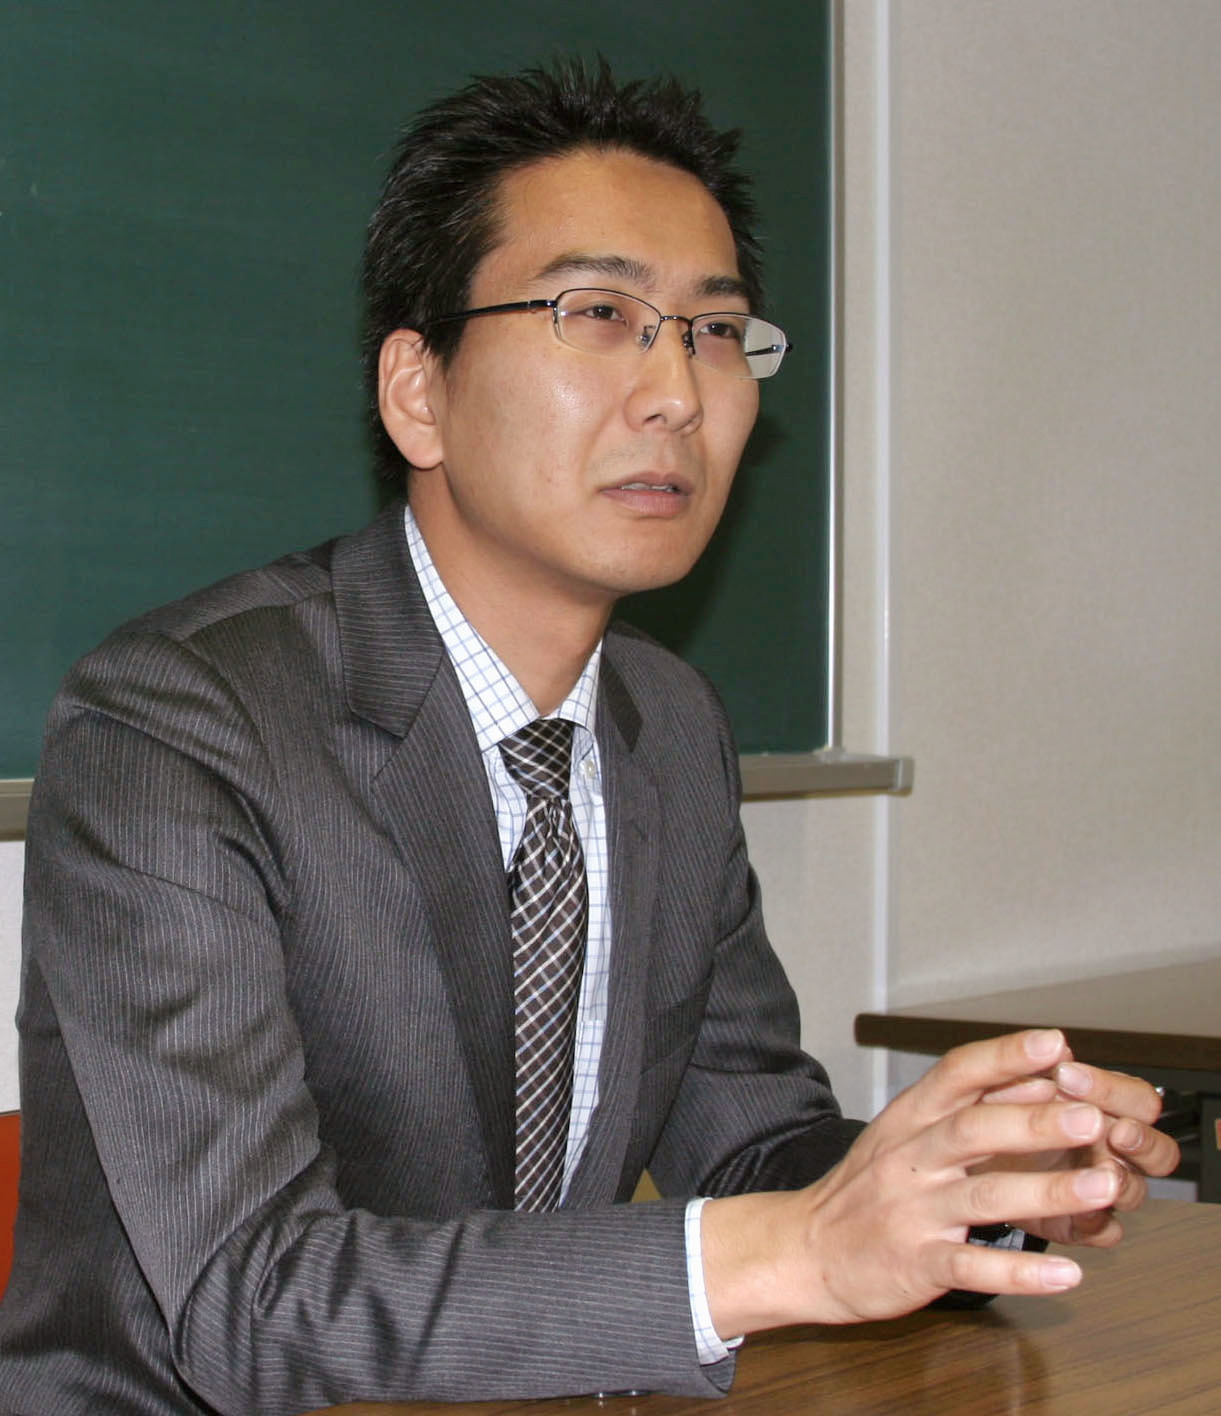 Japanese journalist Yuki Kitazumi speaks during an interview in Fukuoka, southwestern Japan, April 1, 2013, in this photo released by Kyodo. Picture taken on April 1, 2013. Kyodo/via REUTERS